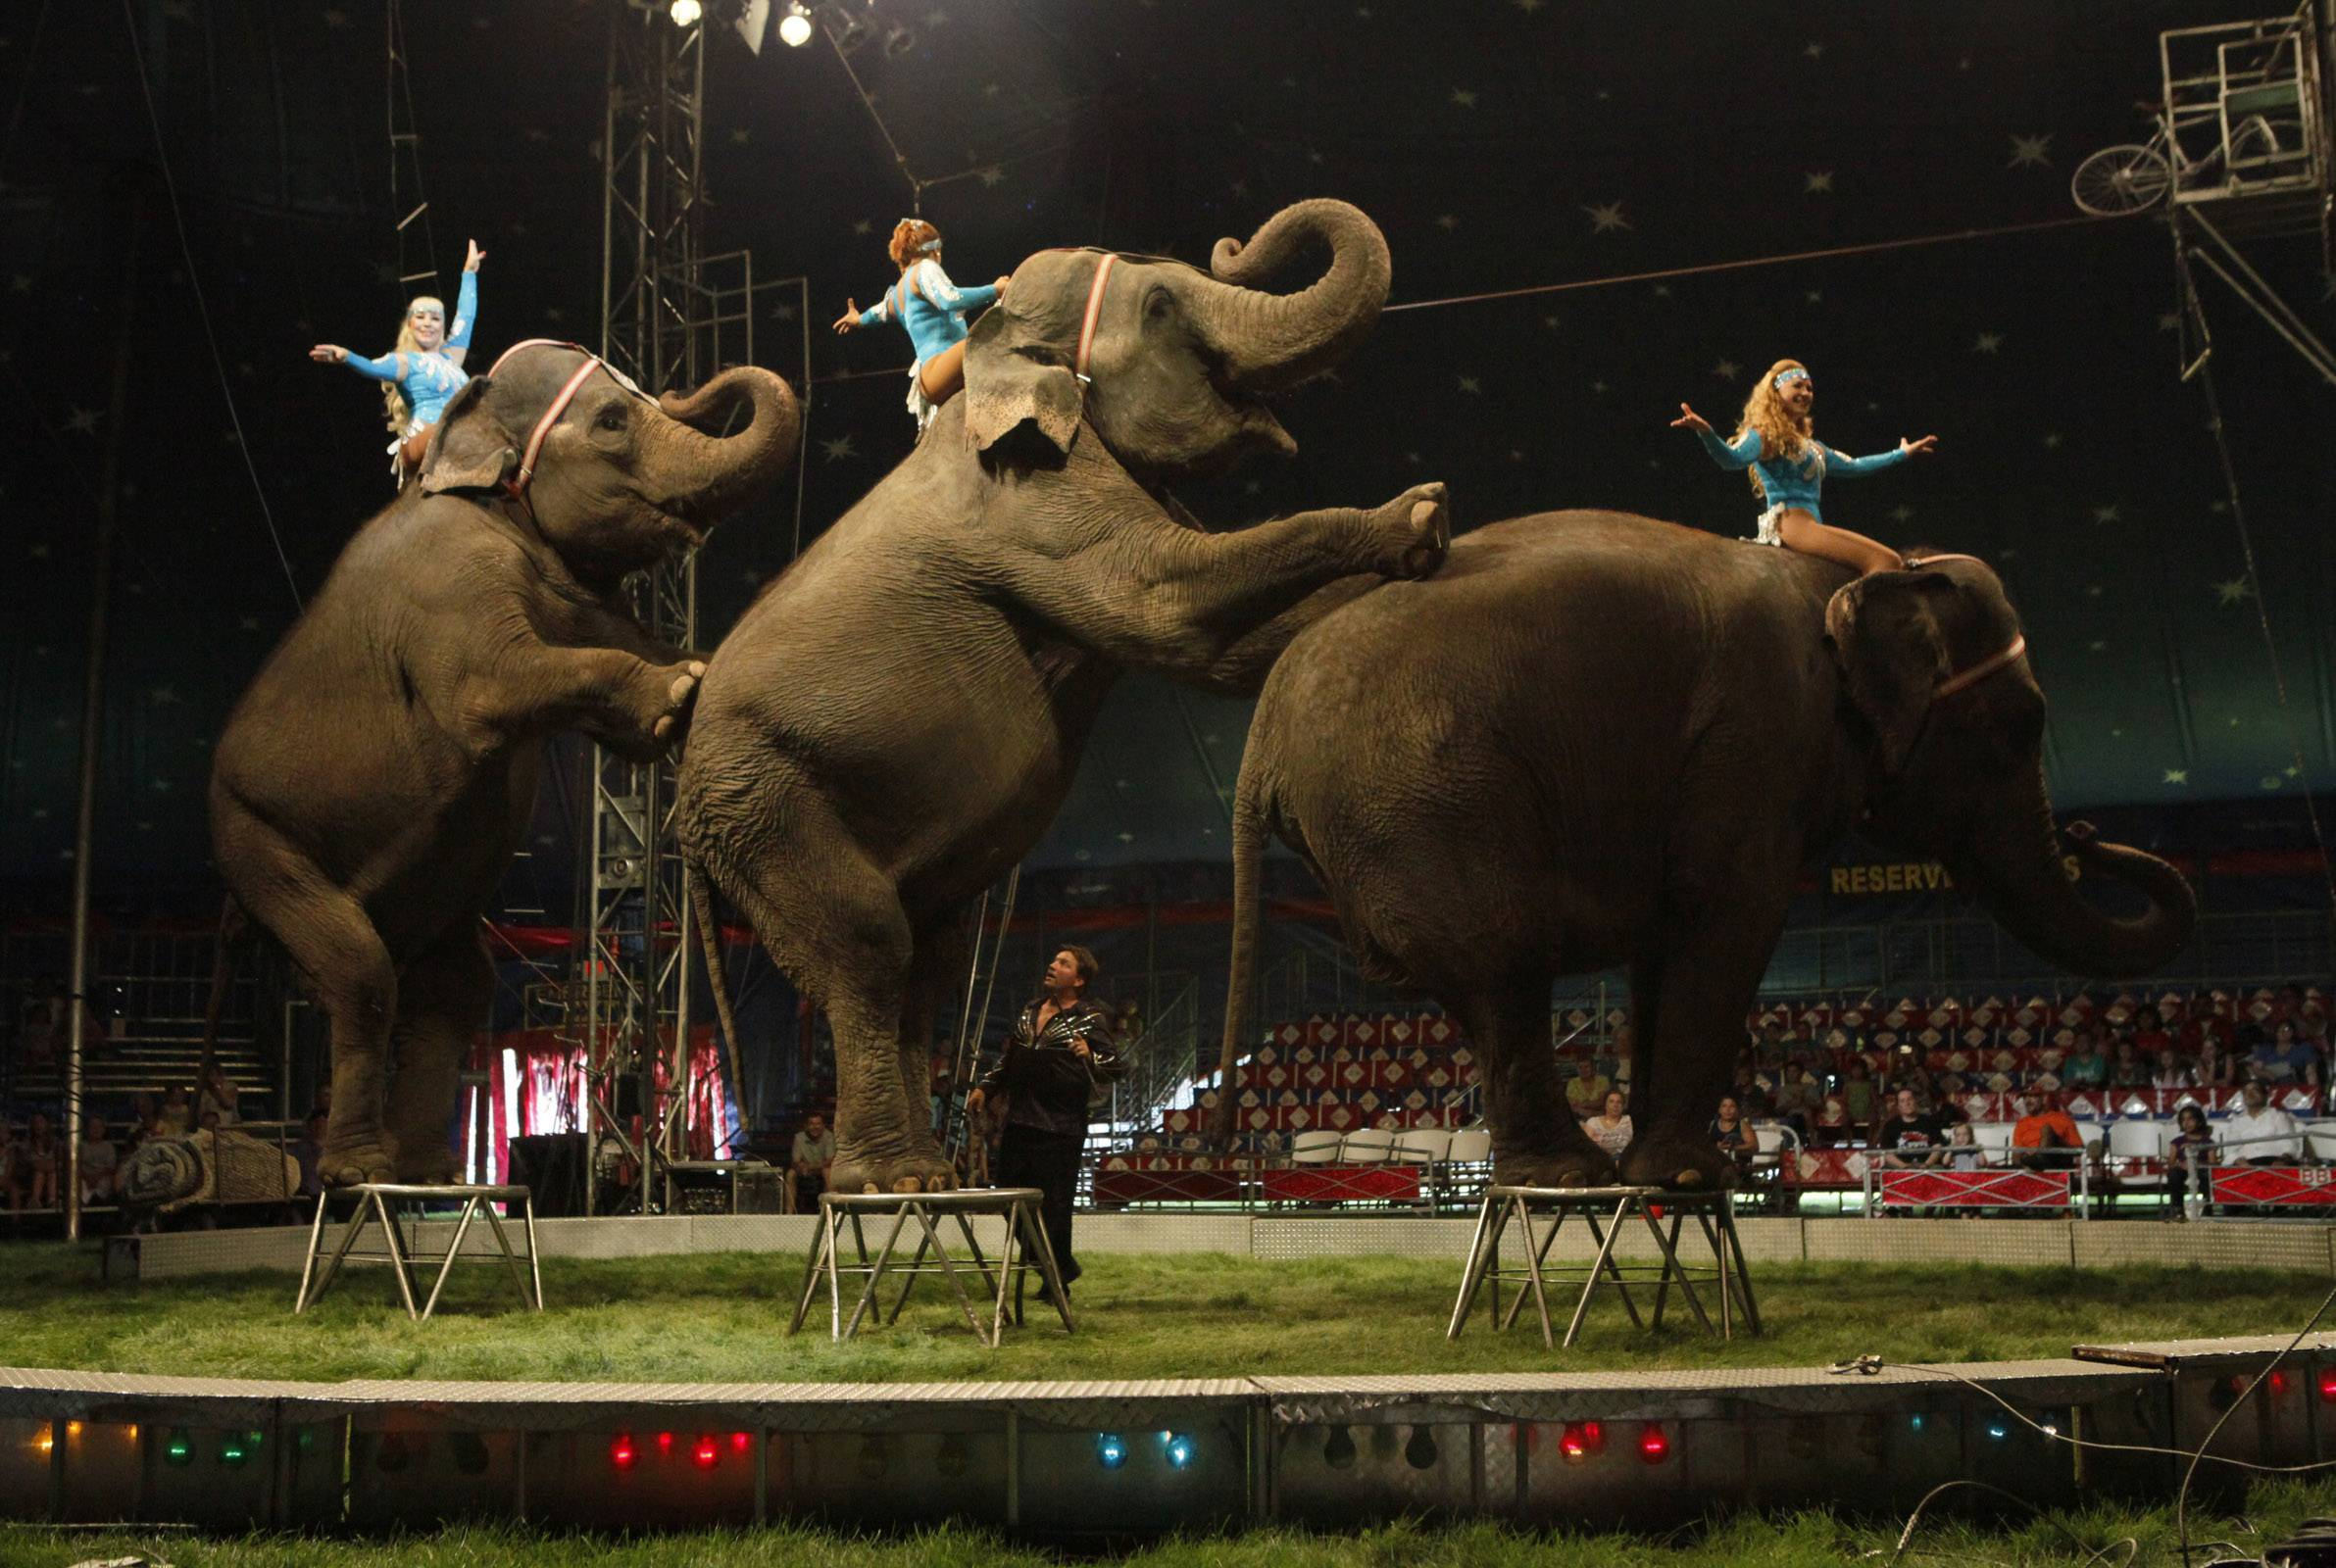 Will the show go on after Illinois bans circus elephants?